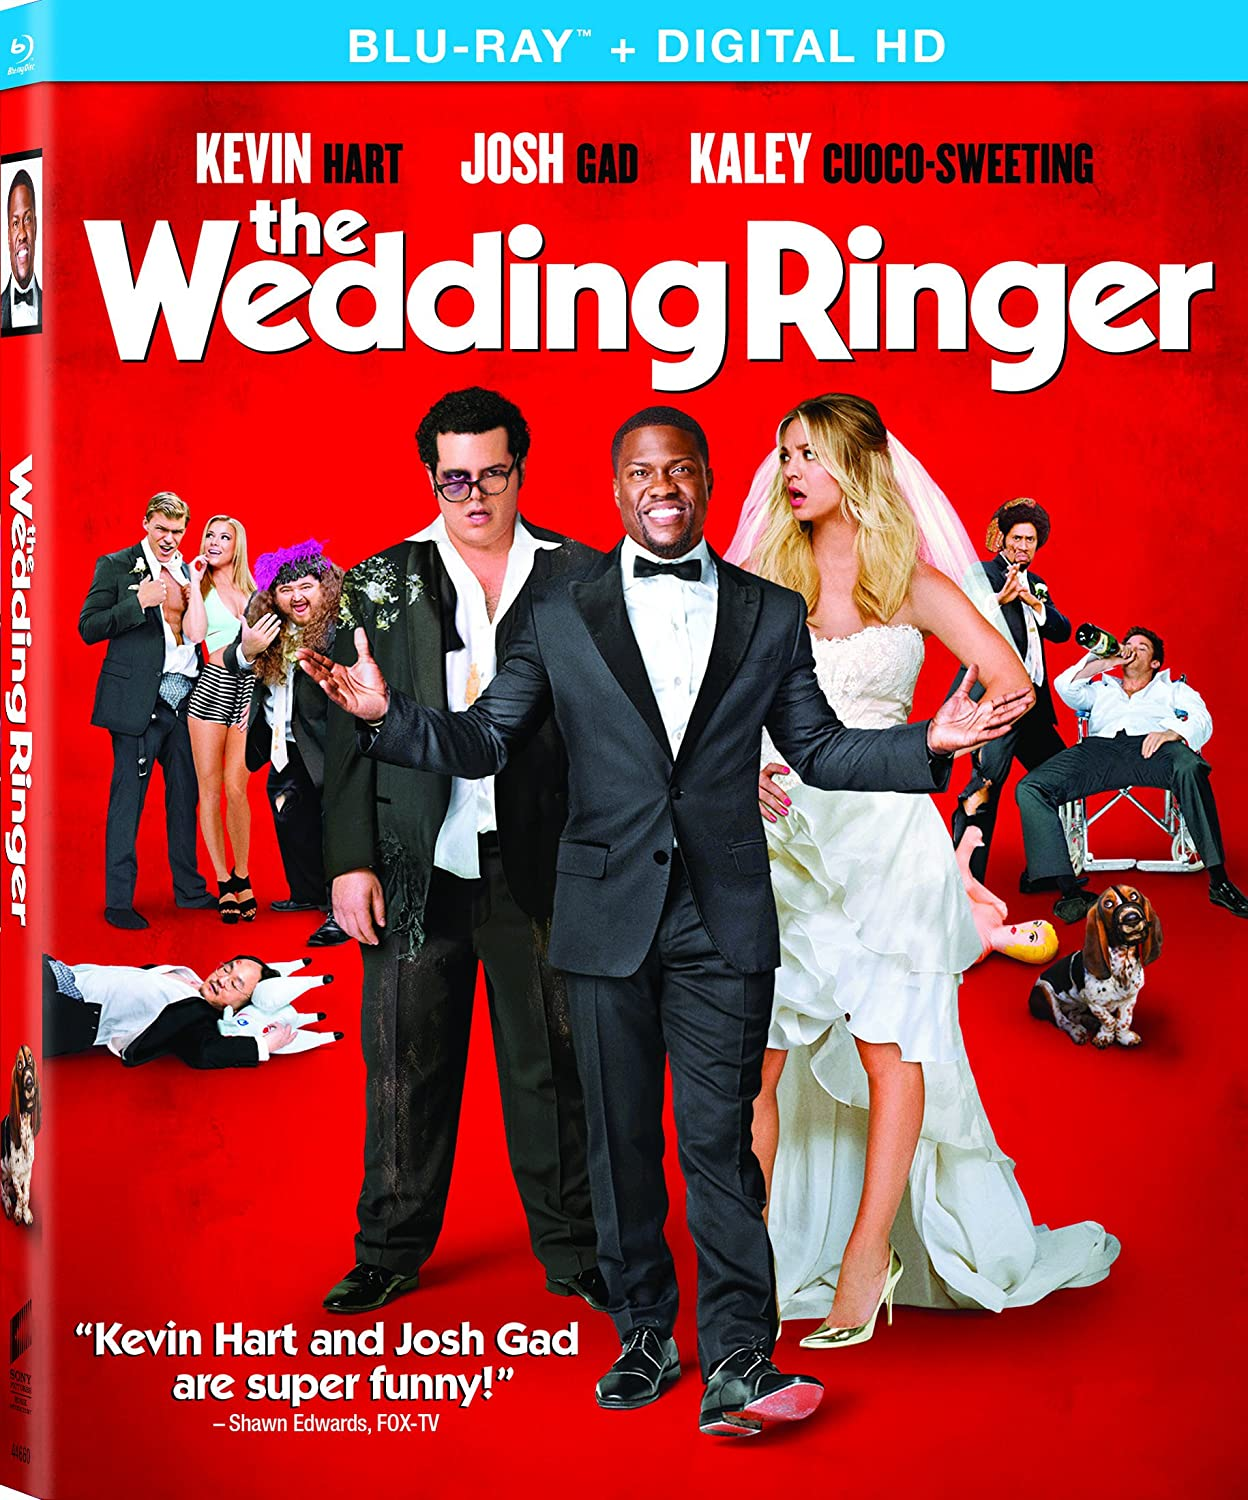 Amazon.com: The Wedding Ringer [Blu-ray]: Kevin Hart, Josh Gad